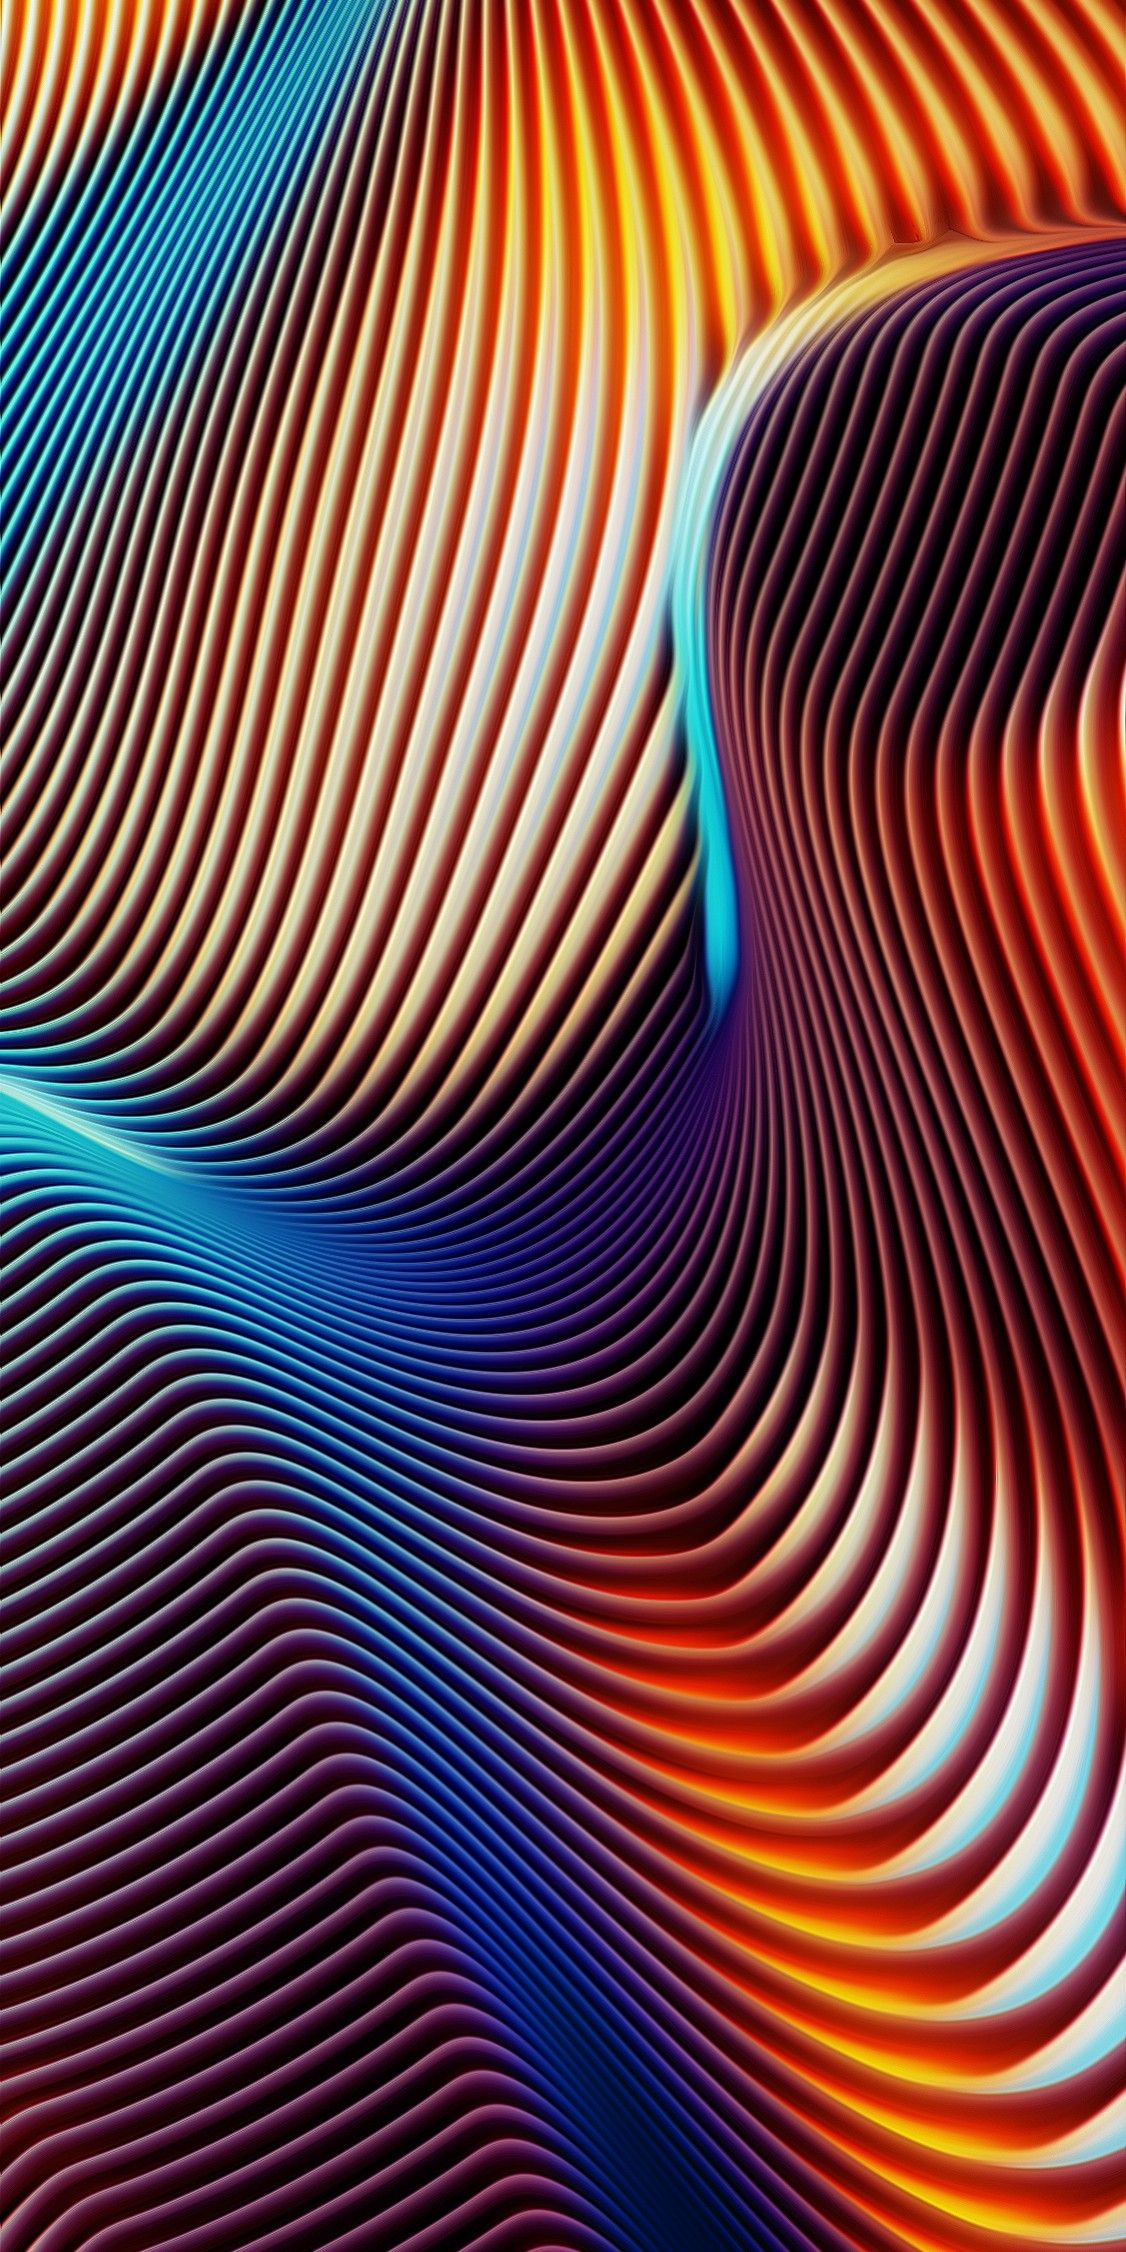 Pin by Iyan Sofyan on Abstract °Amoled °Liquid °Gradient